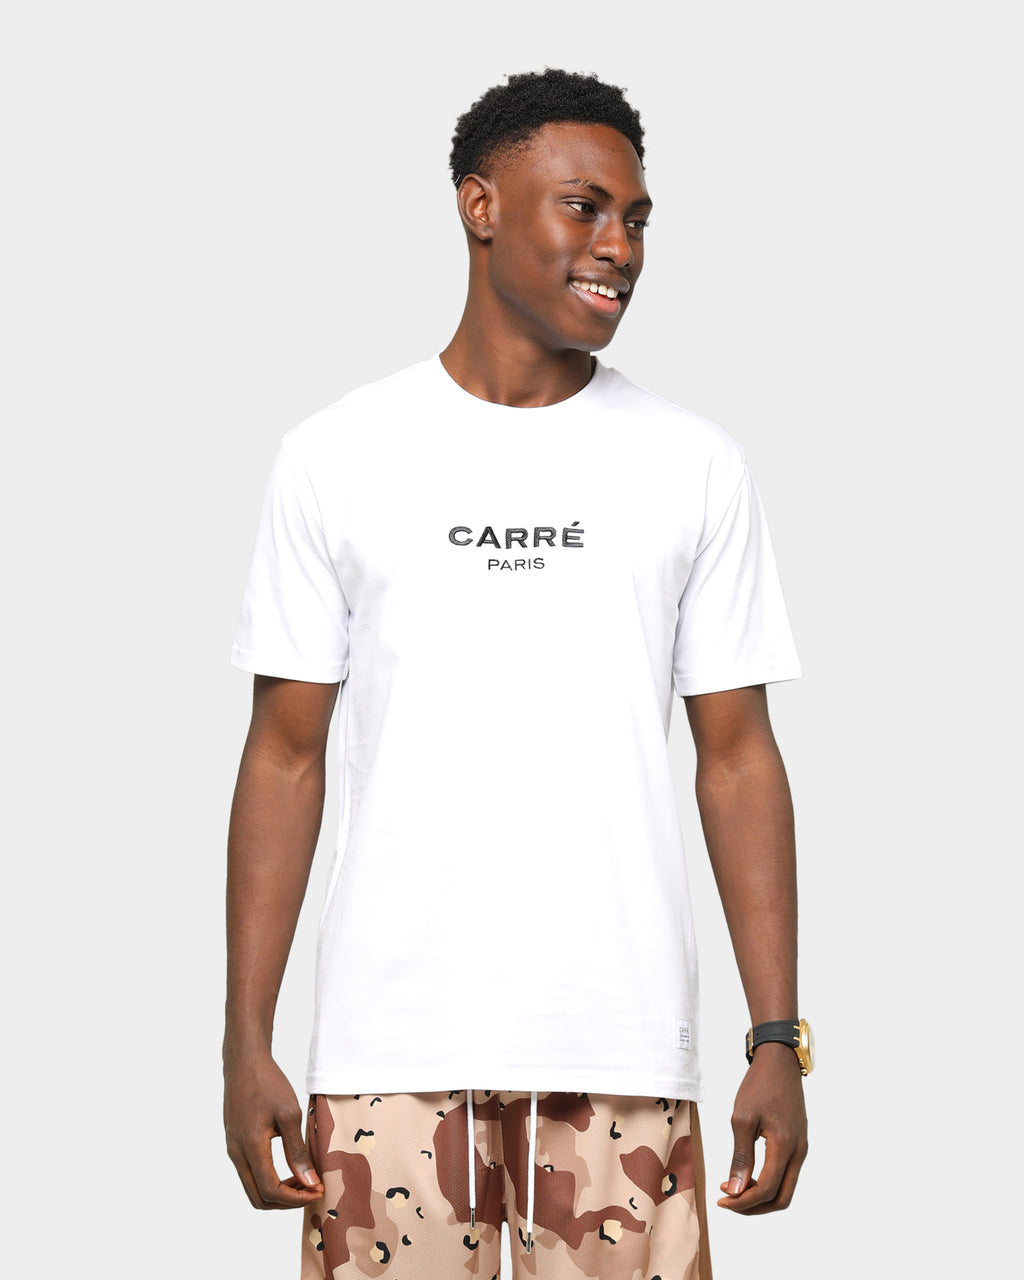 Carré Men's Staple Classique Short Sleeve T-Shirt White